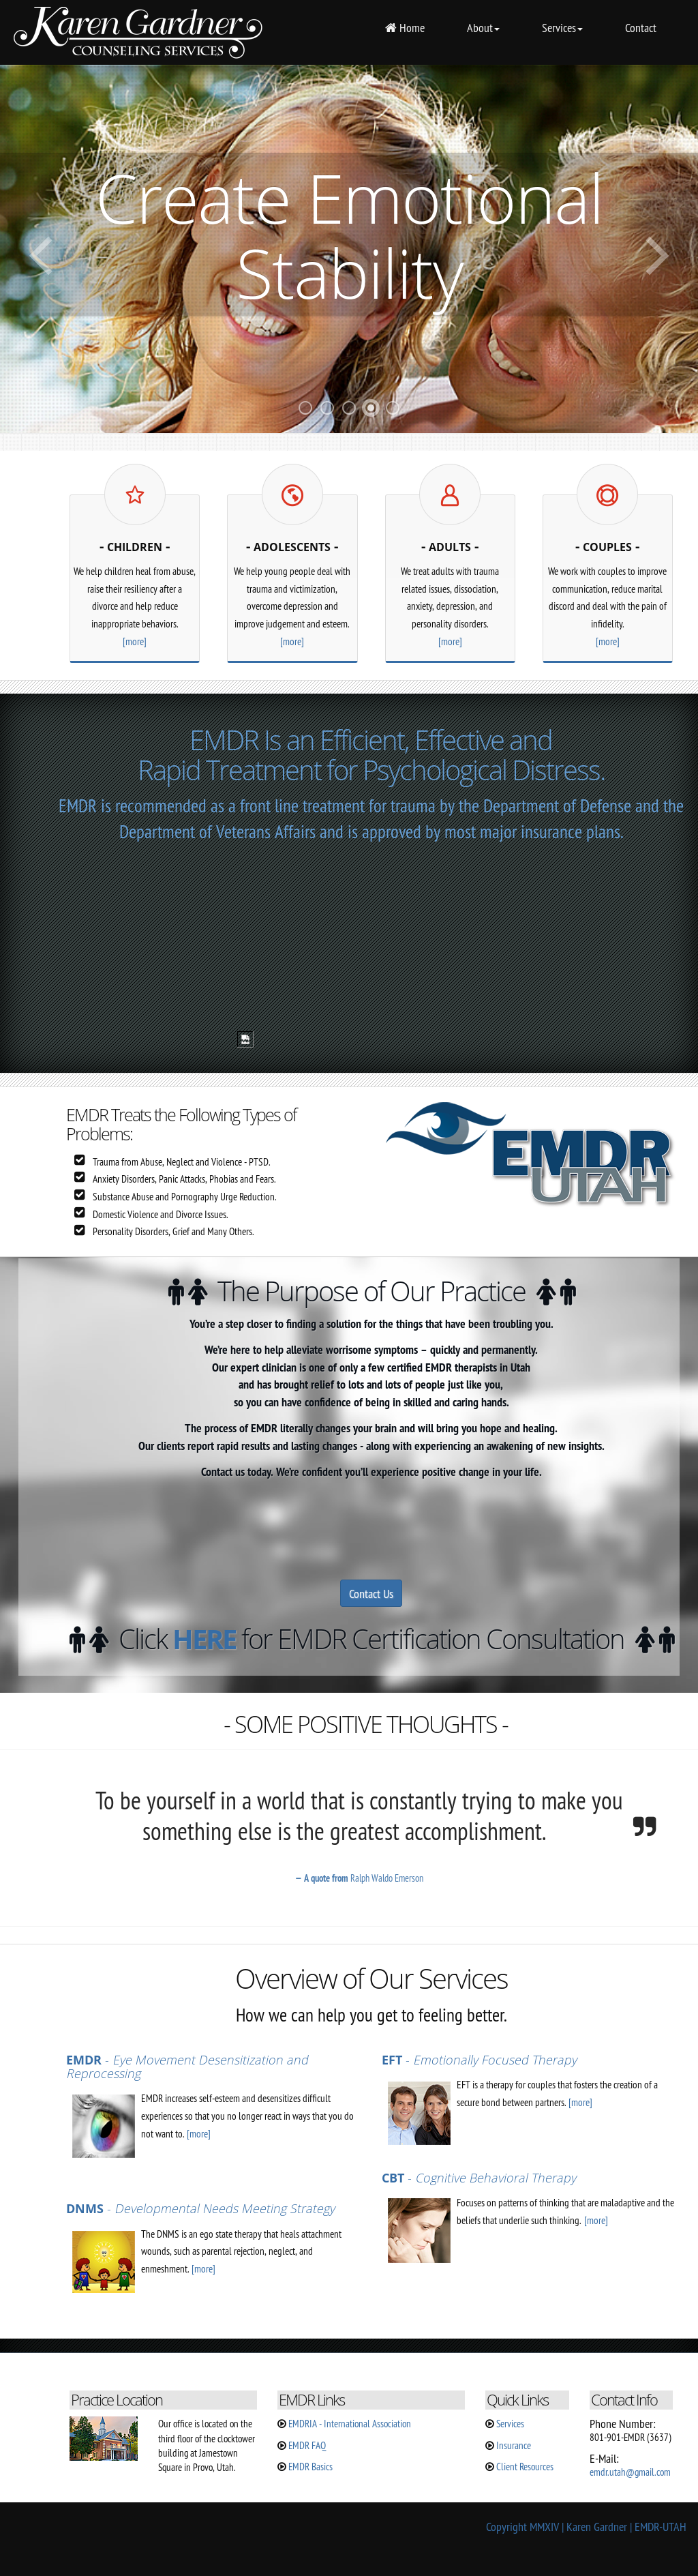 Emdr Utah Competitors Revenue And Employees Owler Company Profile